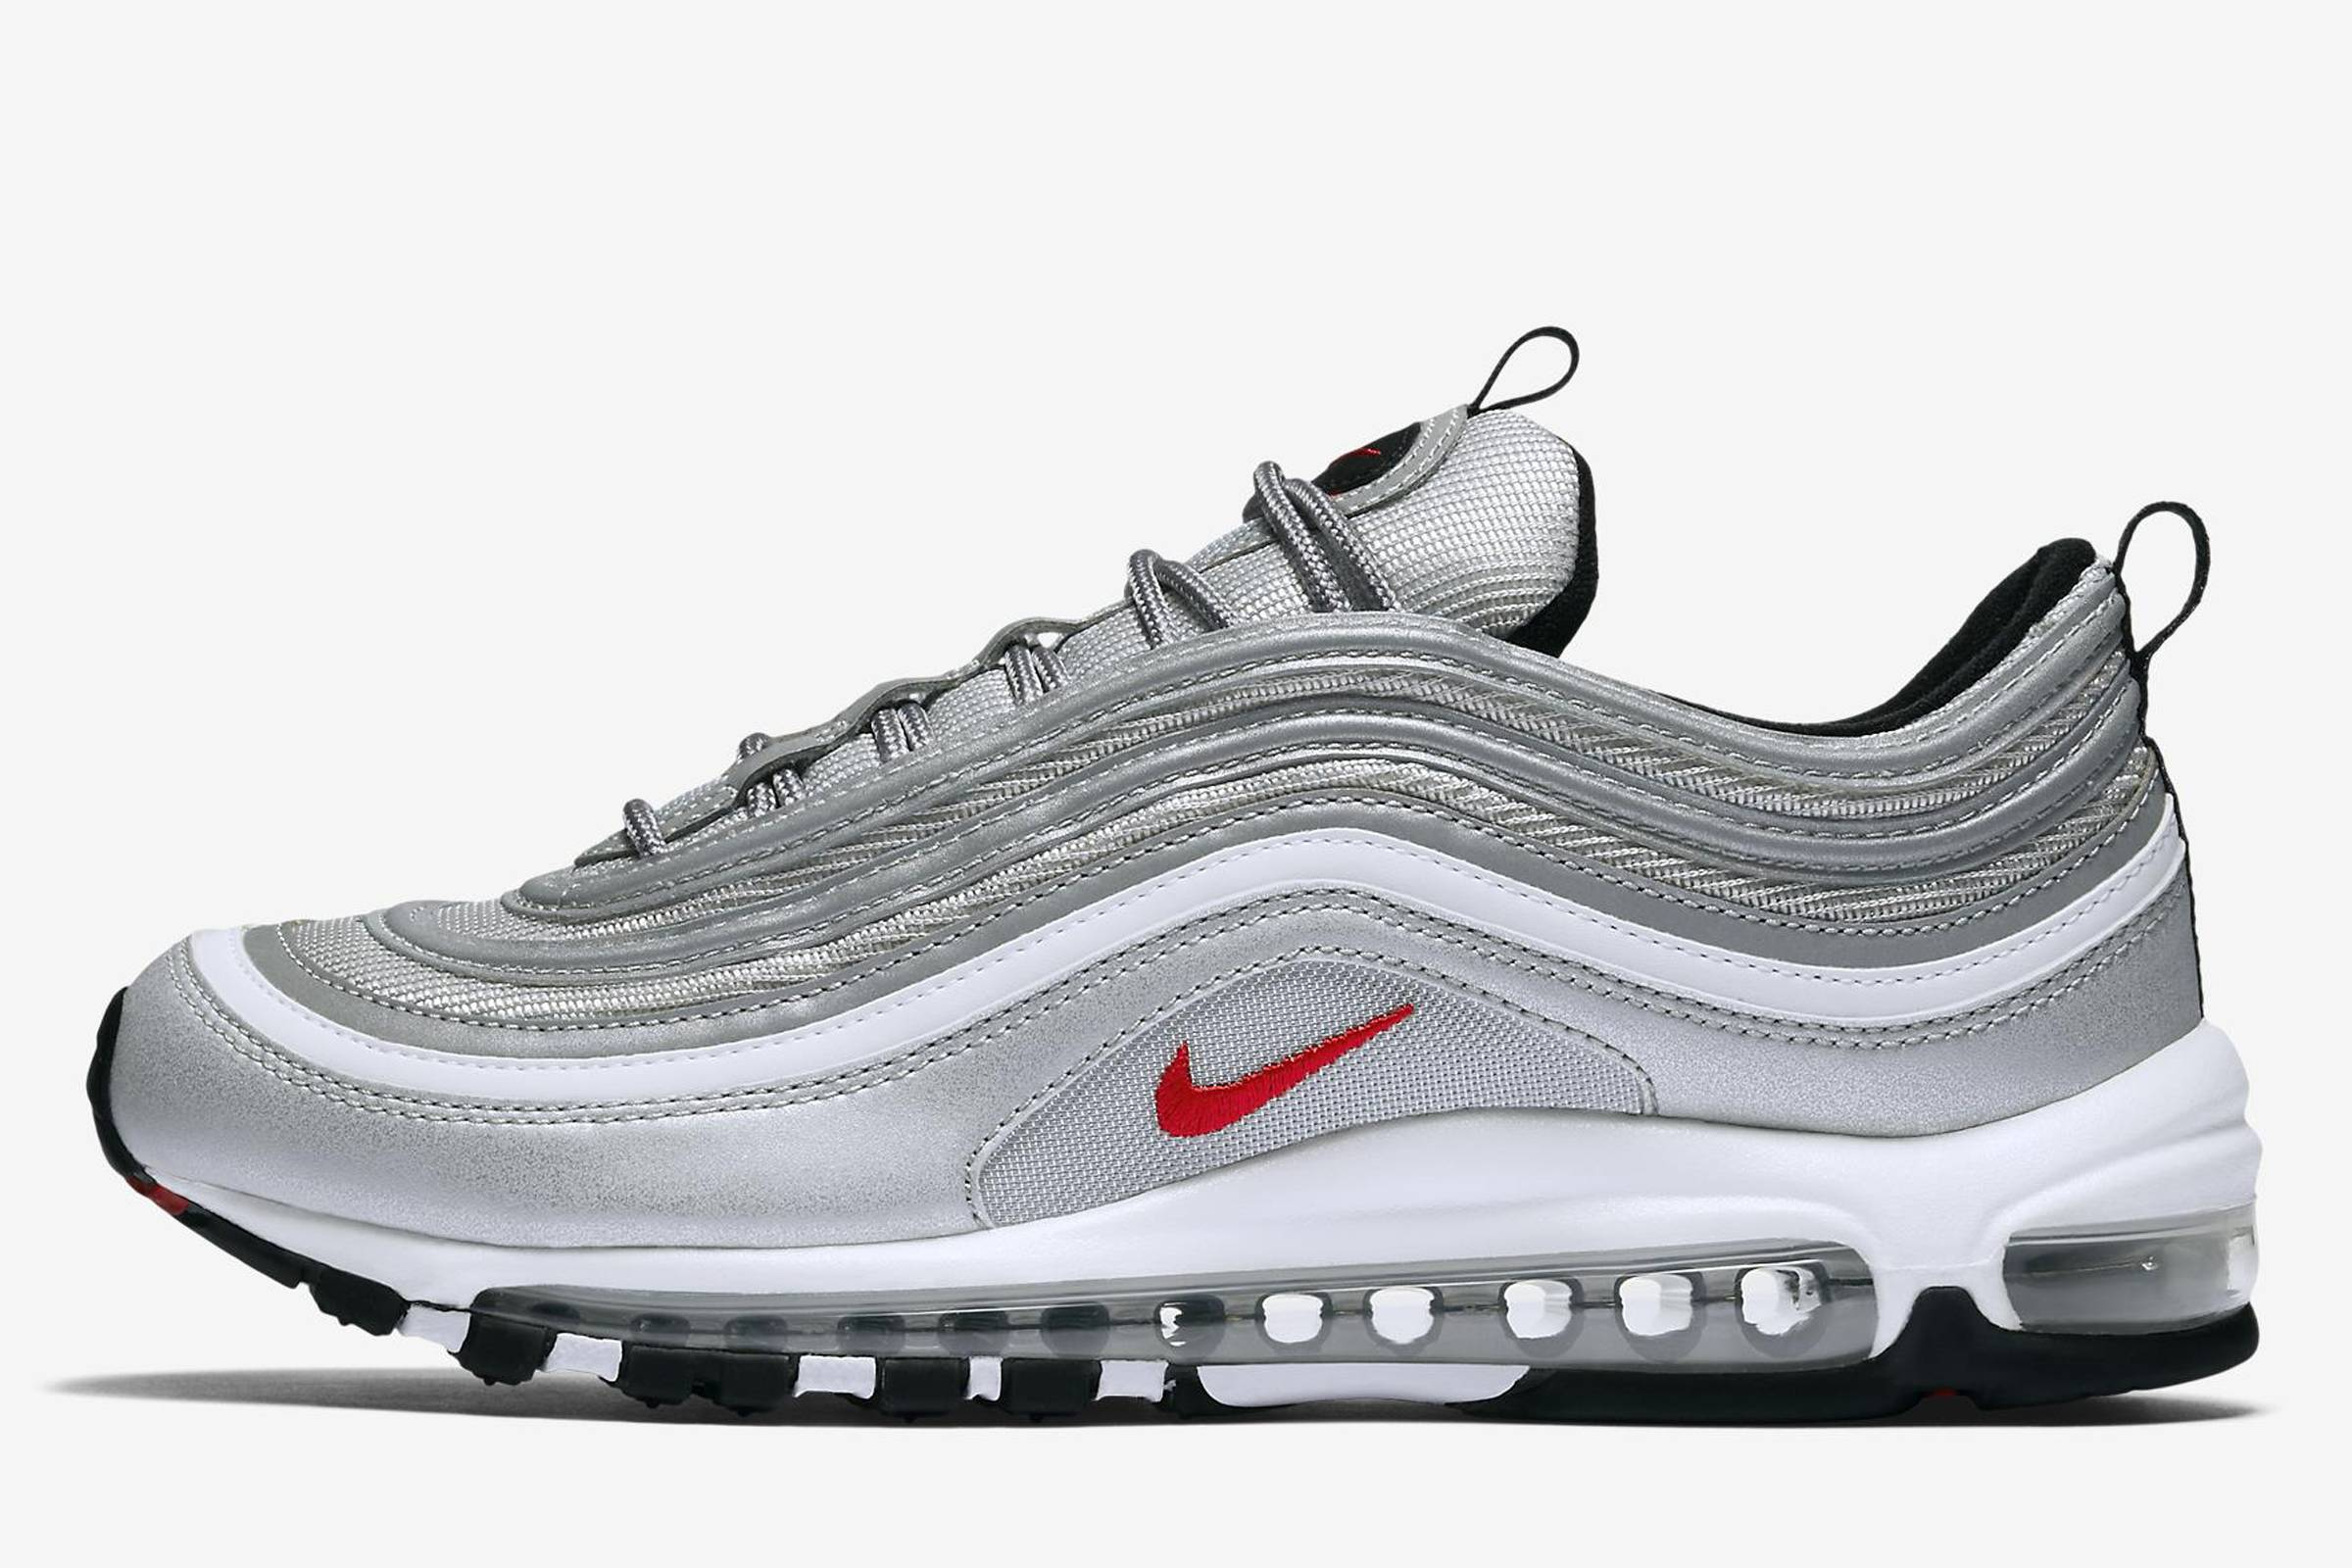 sale retailer 5c042 c7e7c Seduced by Le Silver: A History of the Air Max 97 | Grailed